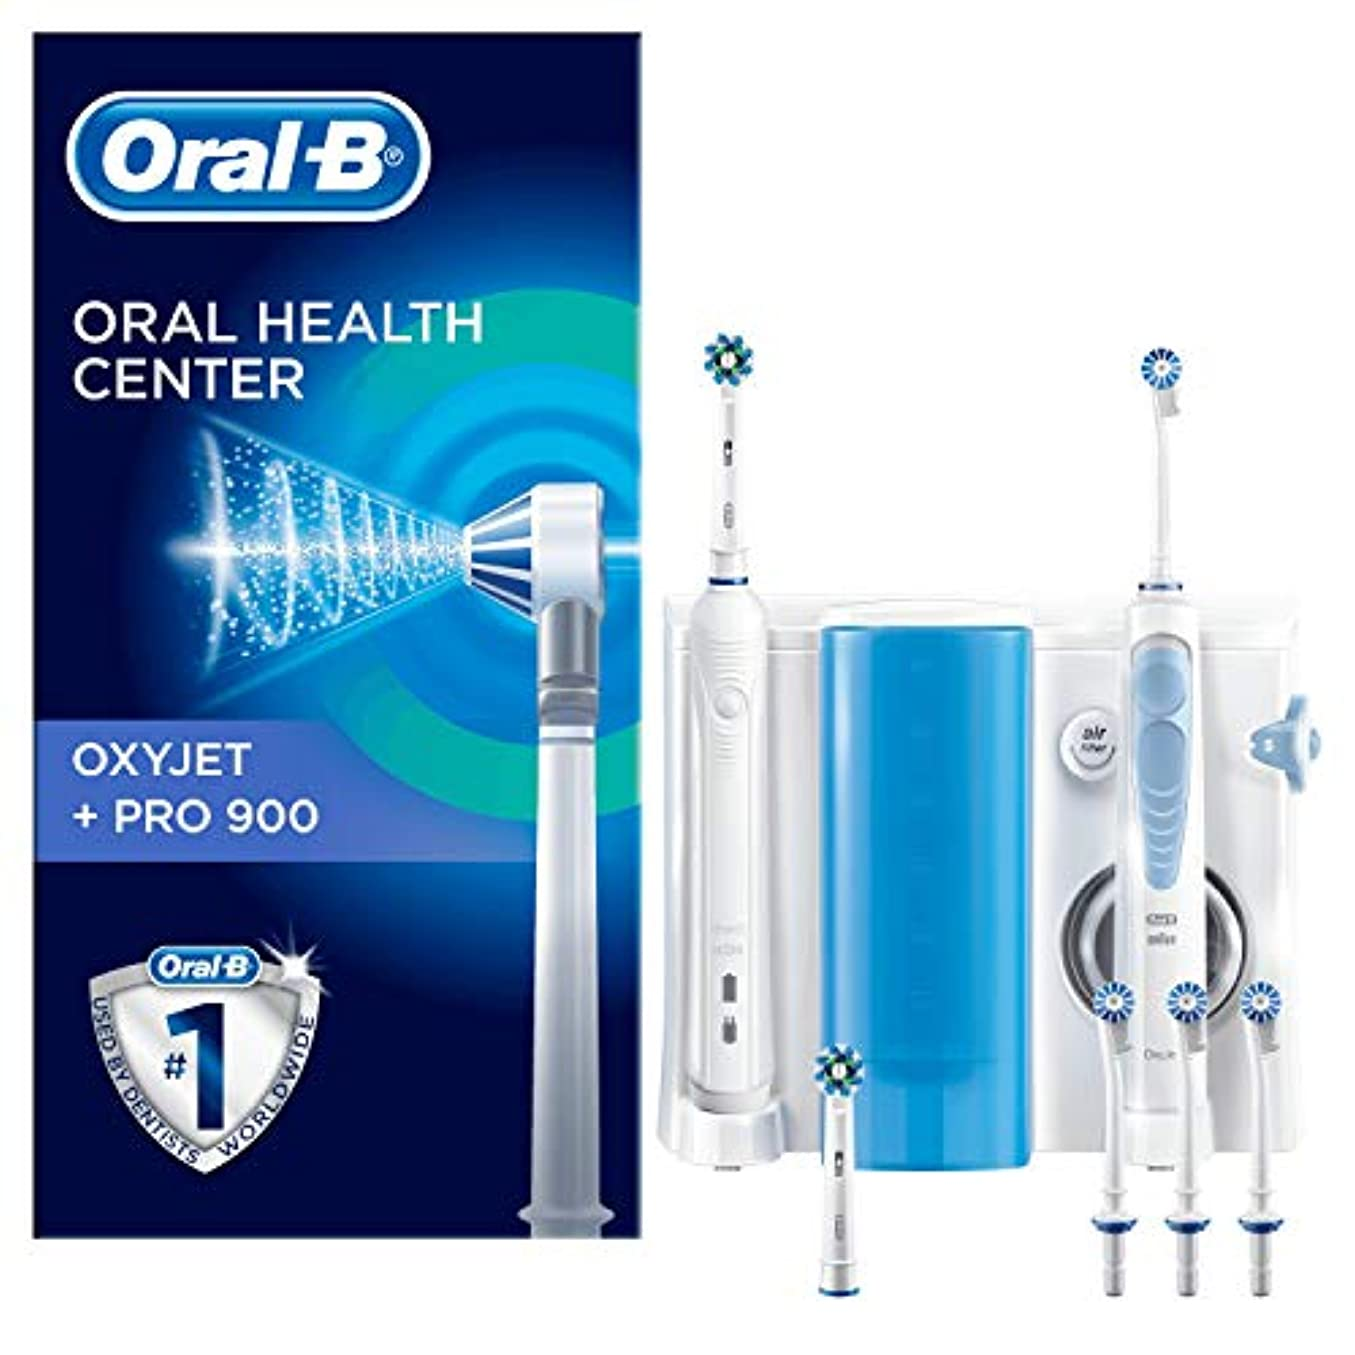 記念碑脱獄言語学Oral B Dental Center Oxyjet Irrigator + Electric Brush Pro 900 [並行輸入品]